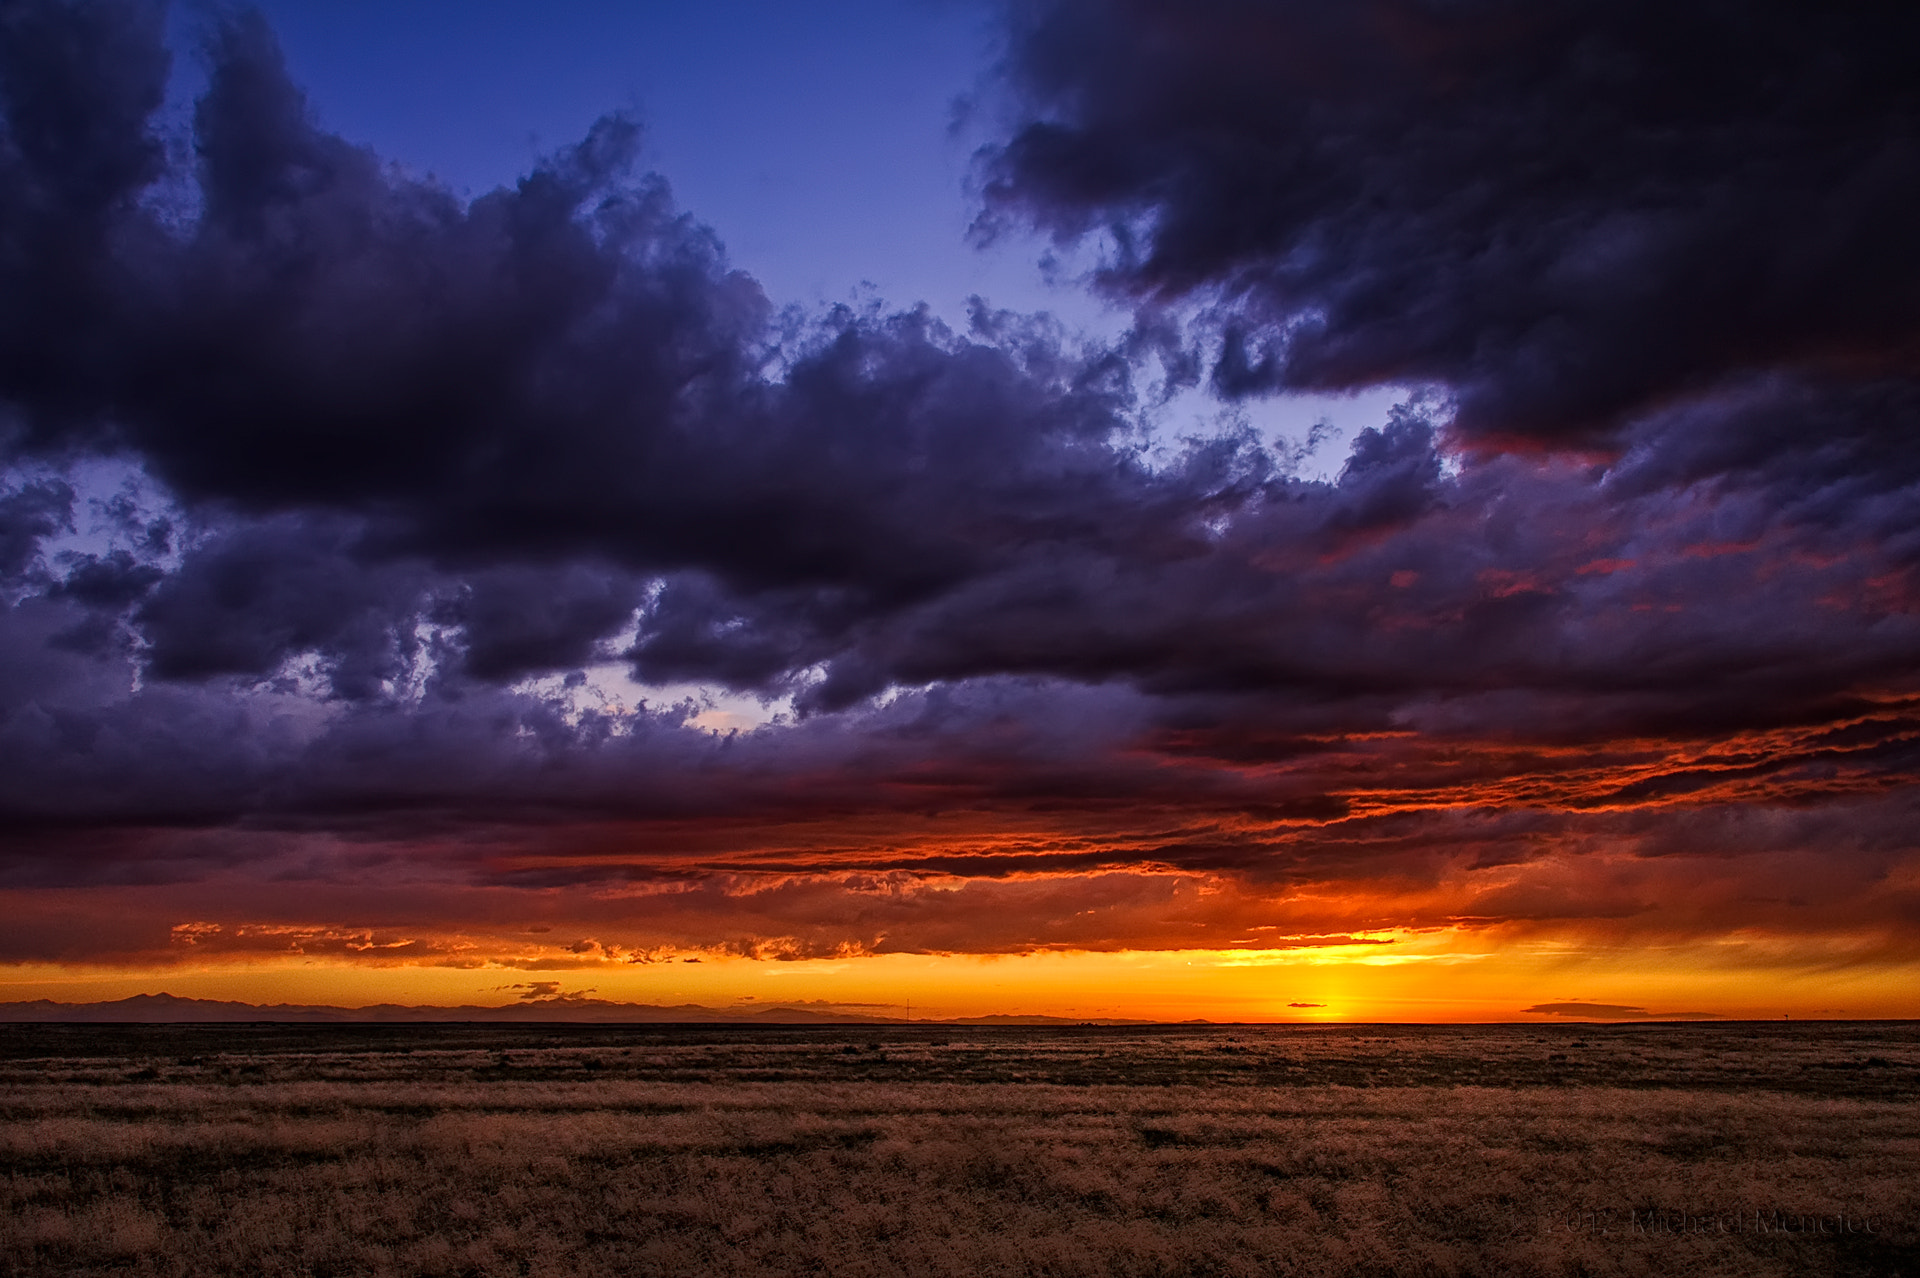 Photograph A Potent Pawnee Eventide by Michael Menefee on 500px